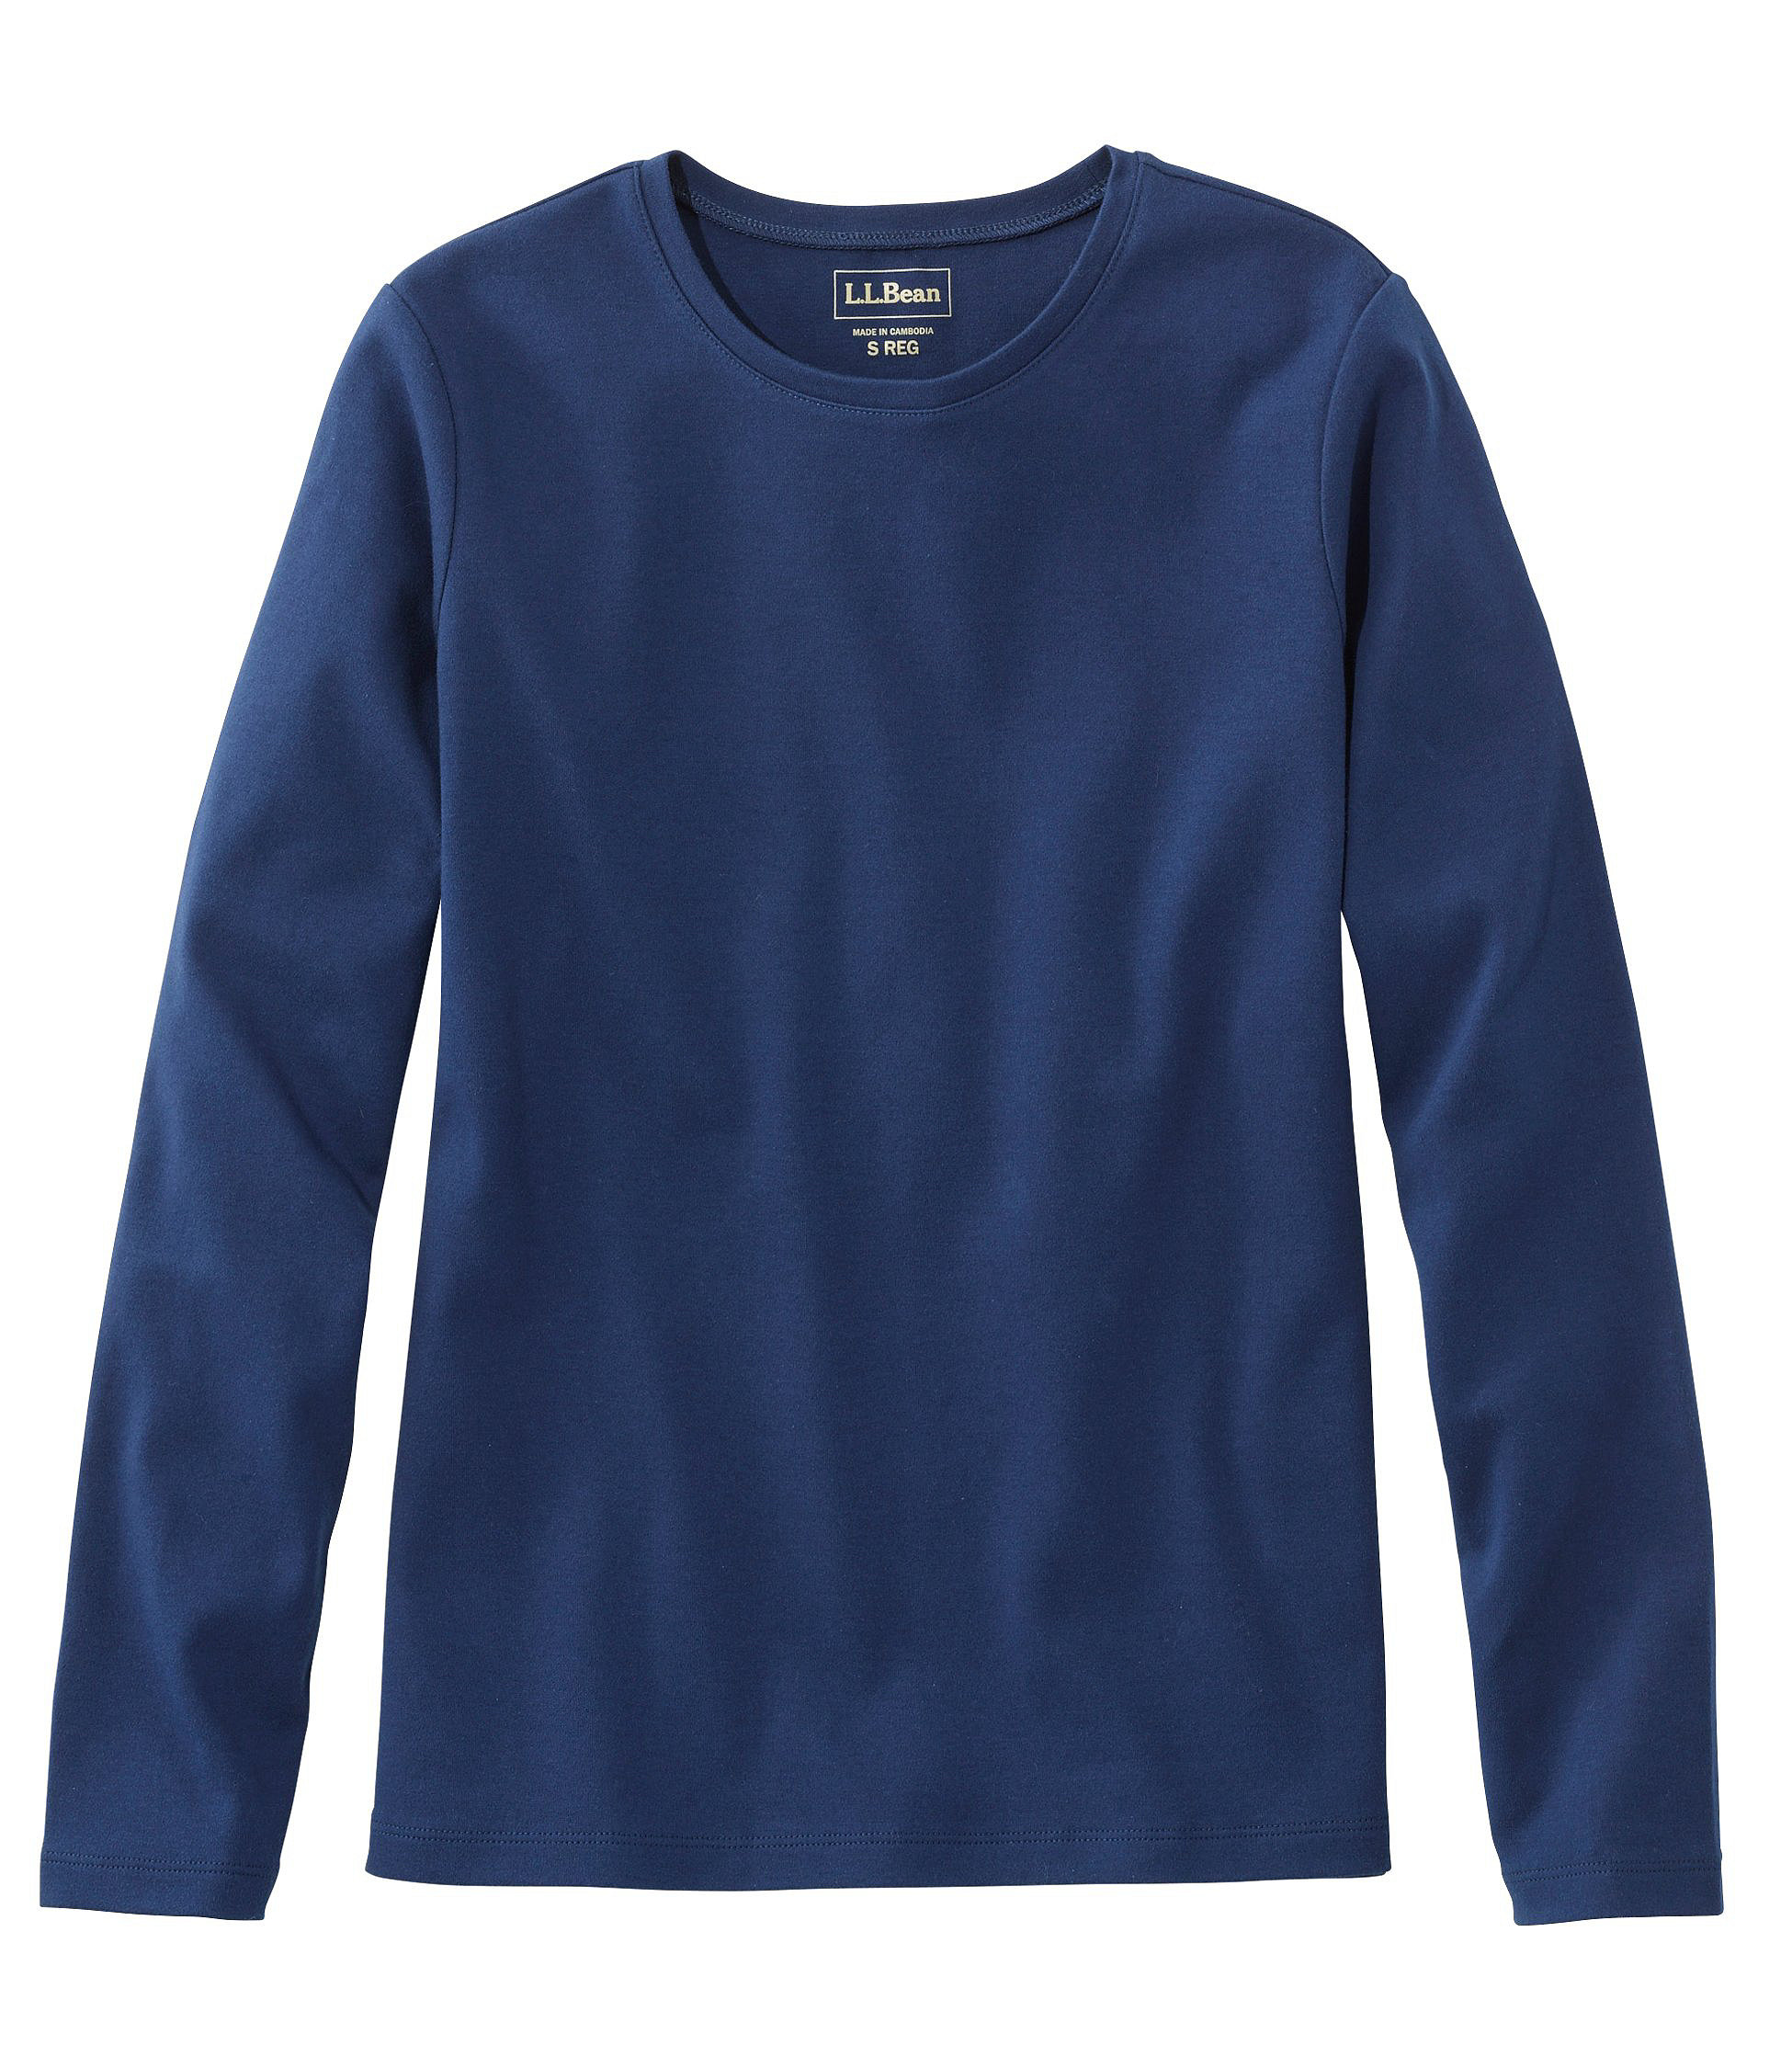 L.L.Bean Tee, Long Sleeve Crewneck by L.L.Bean